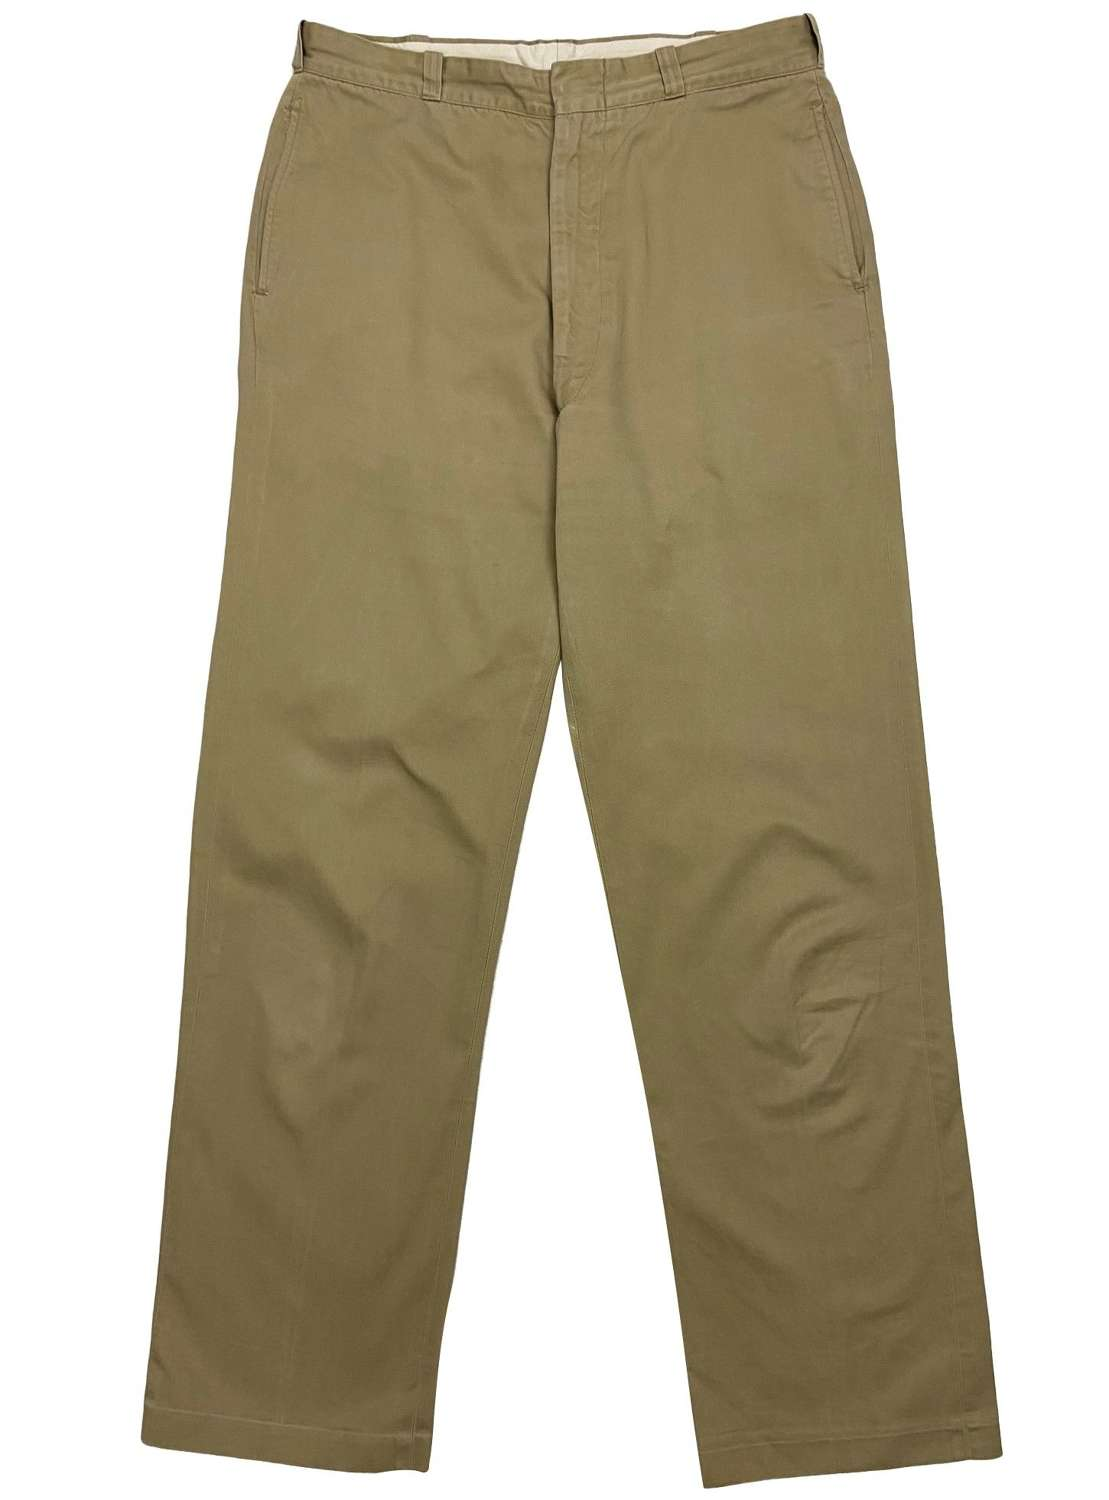 Original 1968 Dated US Army Chinos Trousers 34x34